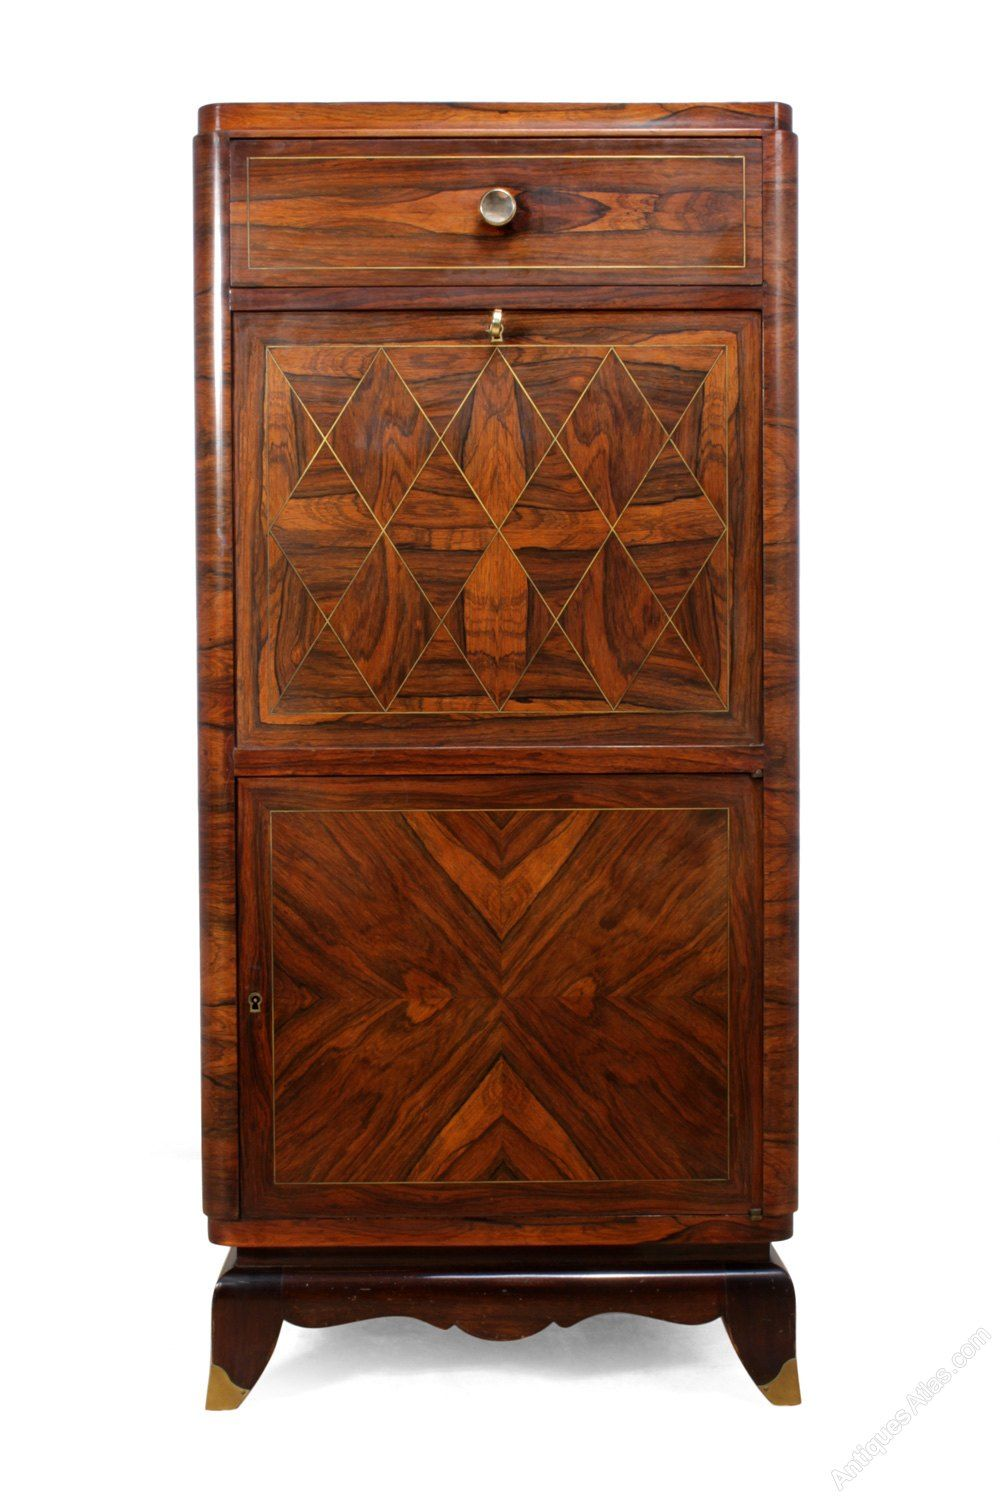 Jugendstil Deko Art Deco Cocktail Cabinet In Rosewood C1920 Antiques Atlas Art